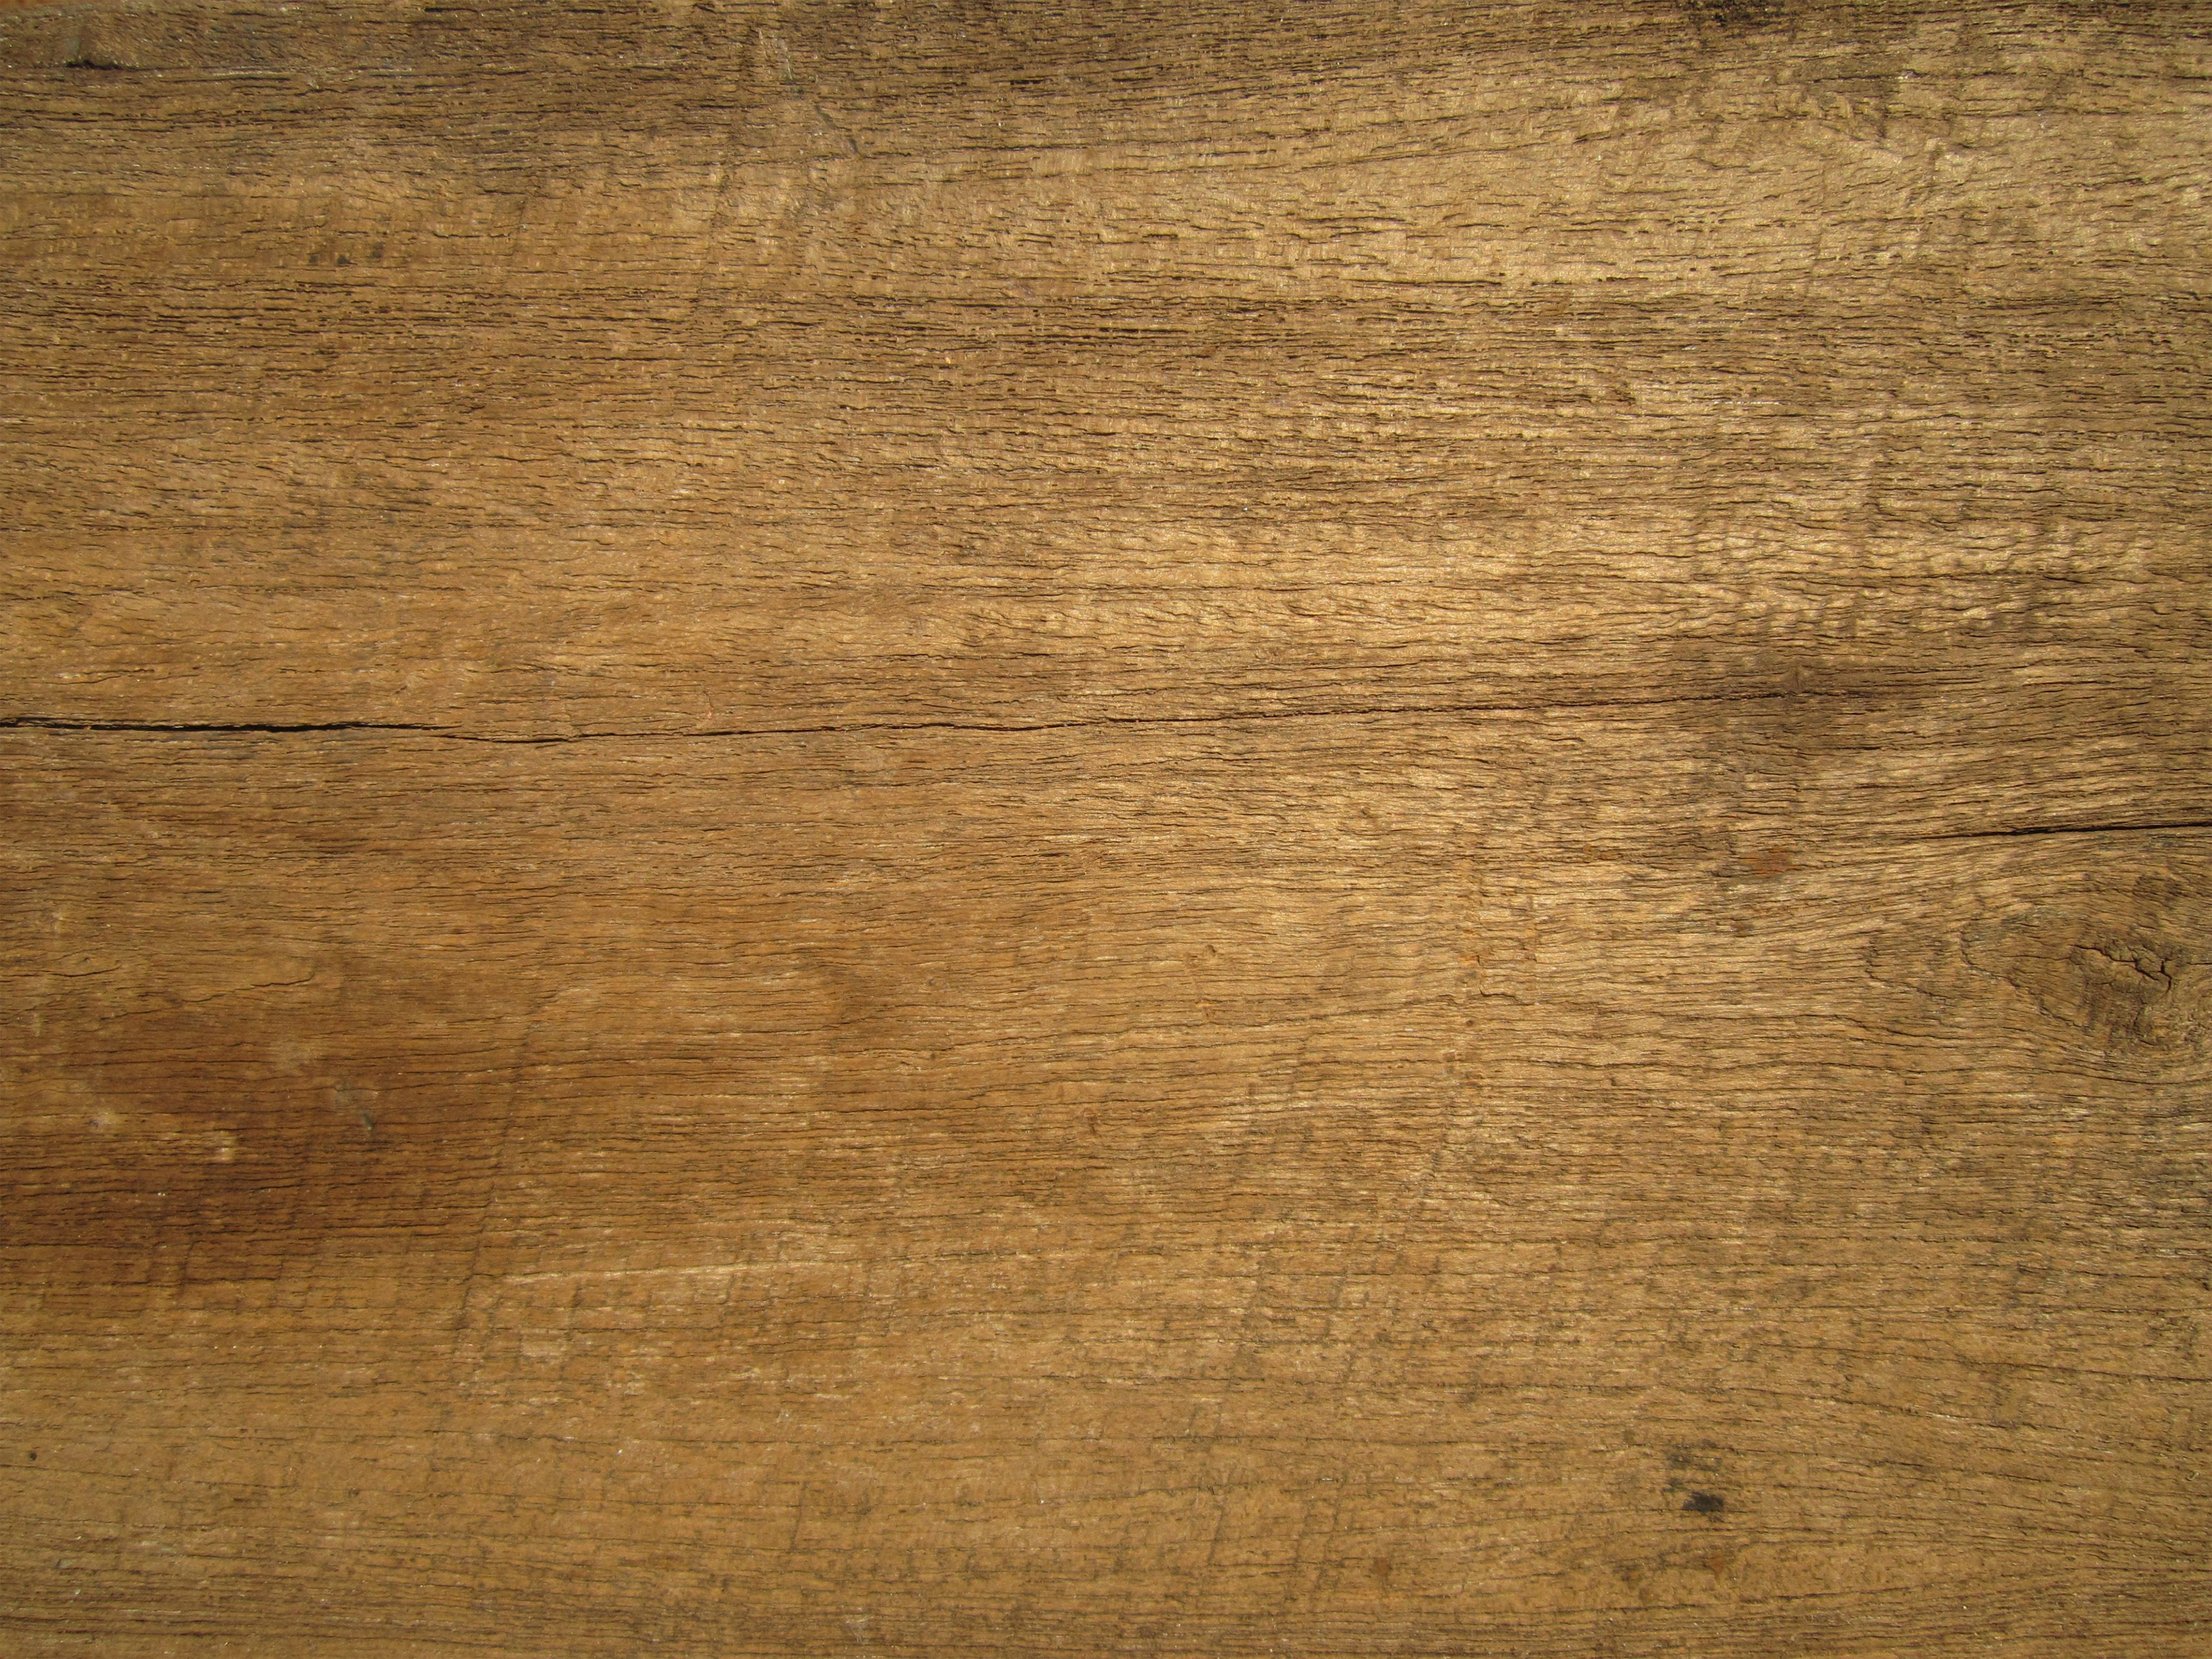 Rough Wood Texture Seamless Design Ideas 14748 Other Ideas Design. Rough Wood Texture Seamless Design Ideas 14748 Other Ideas Design